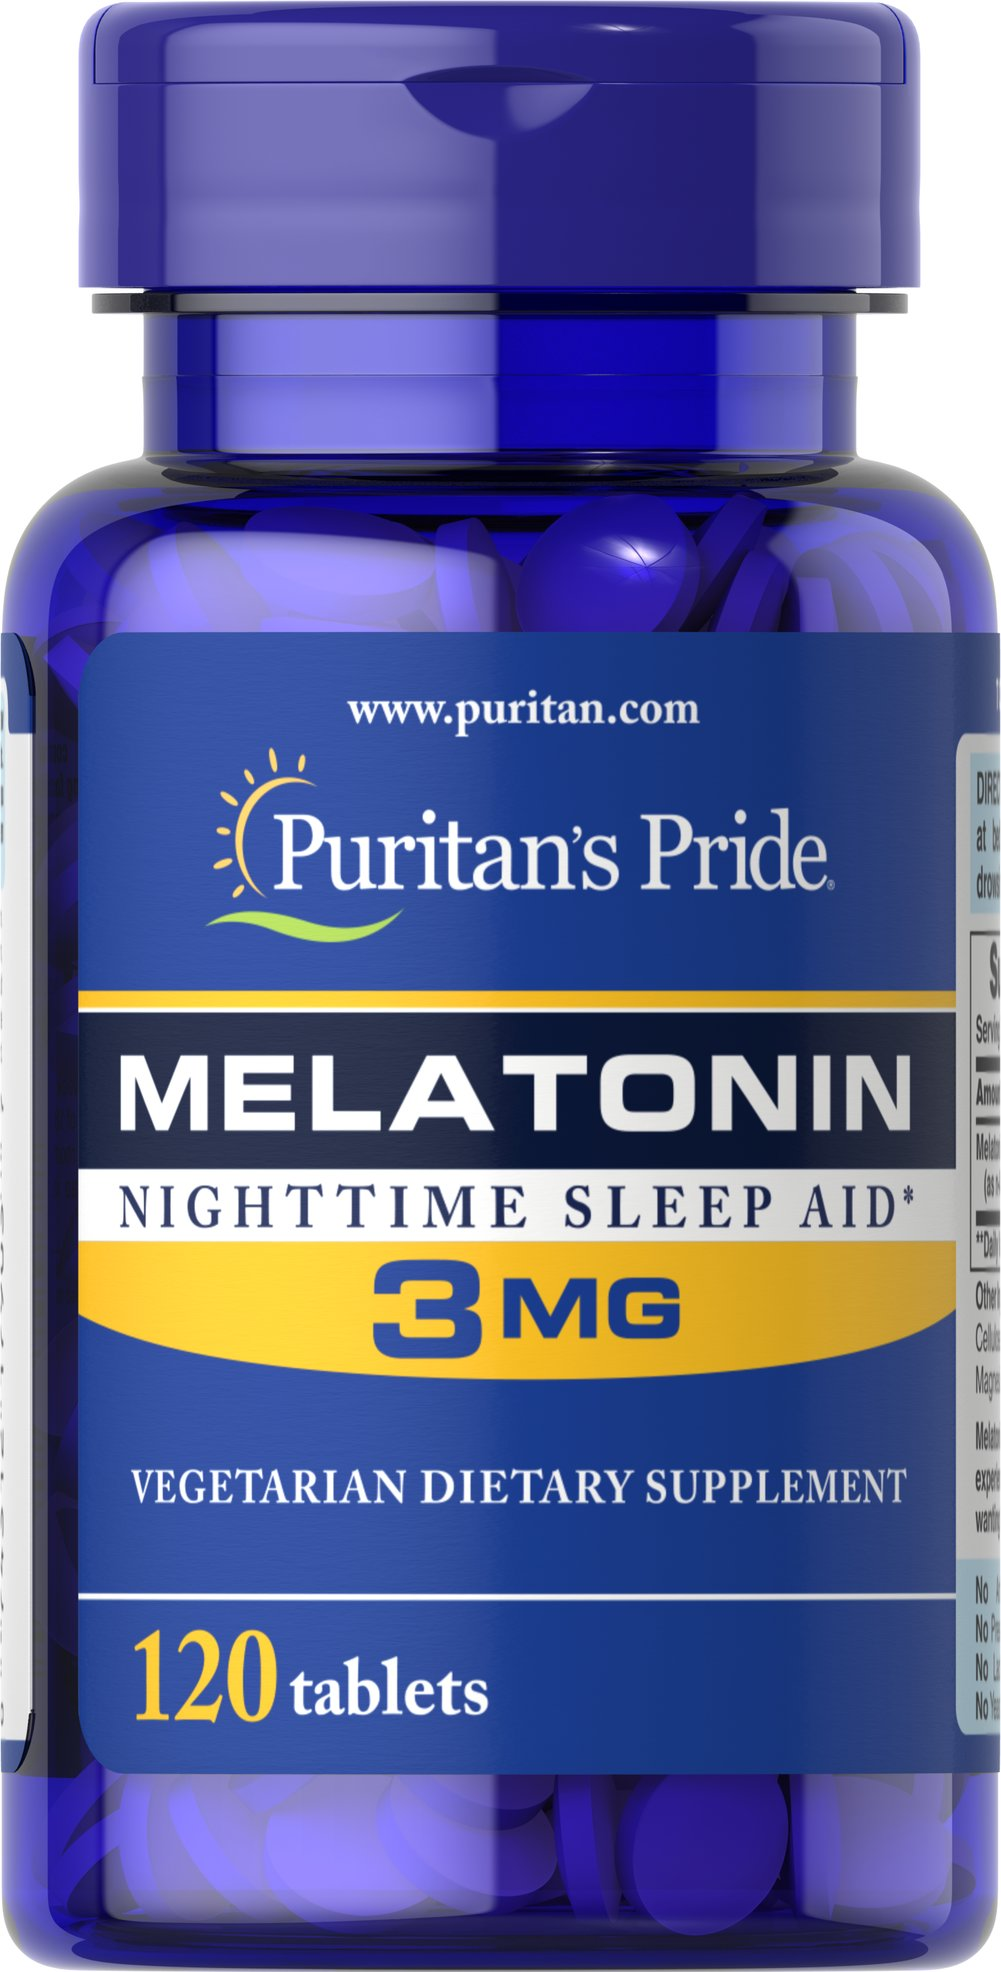 Melatonin 3 mg Thumbnail Alternate Bottle View